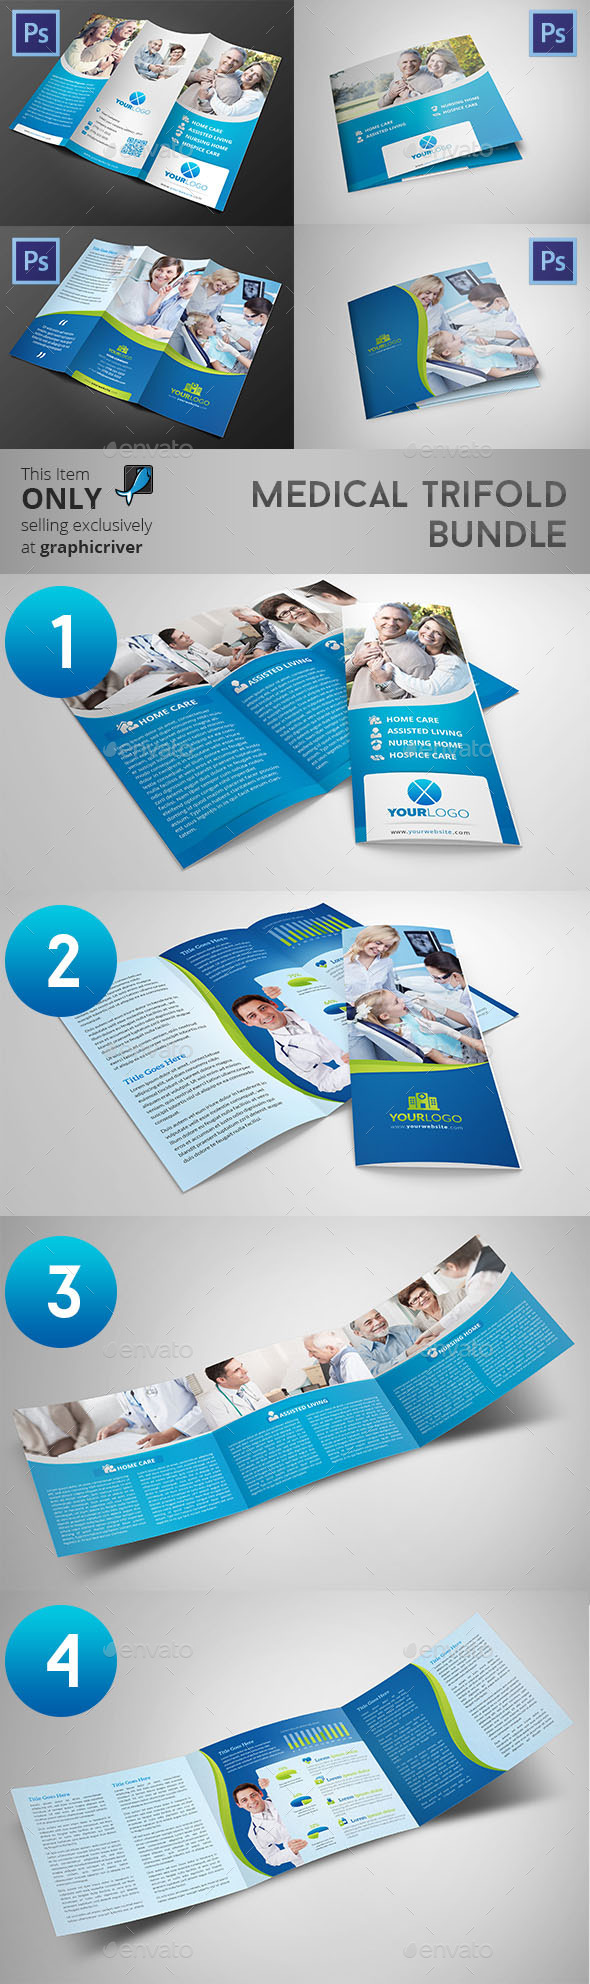 Medical Trifold Bundle